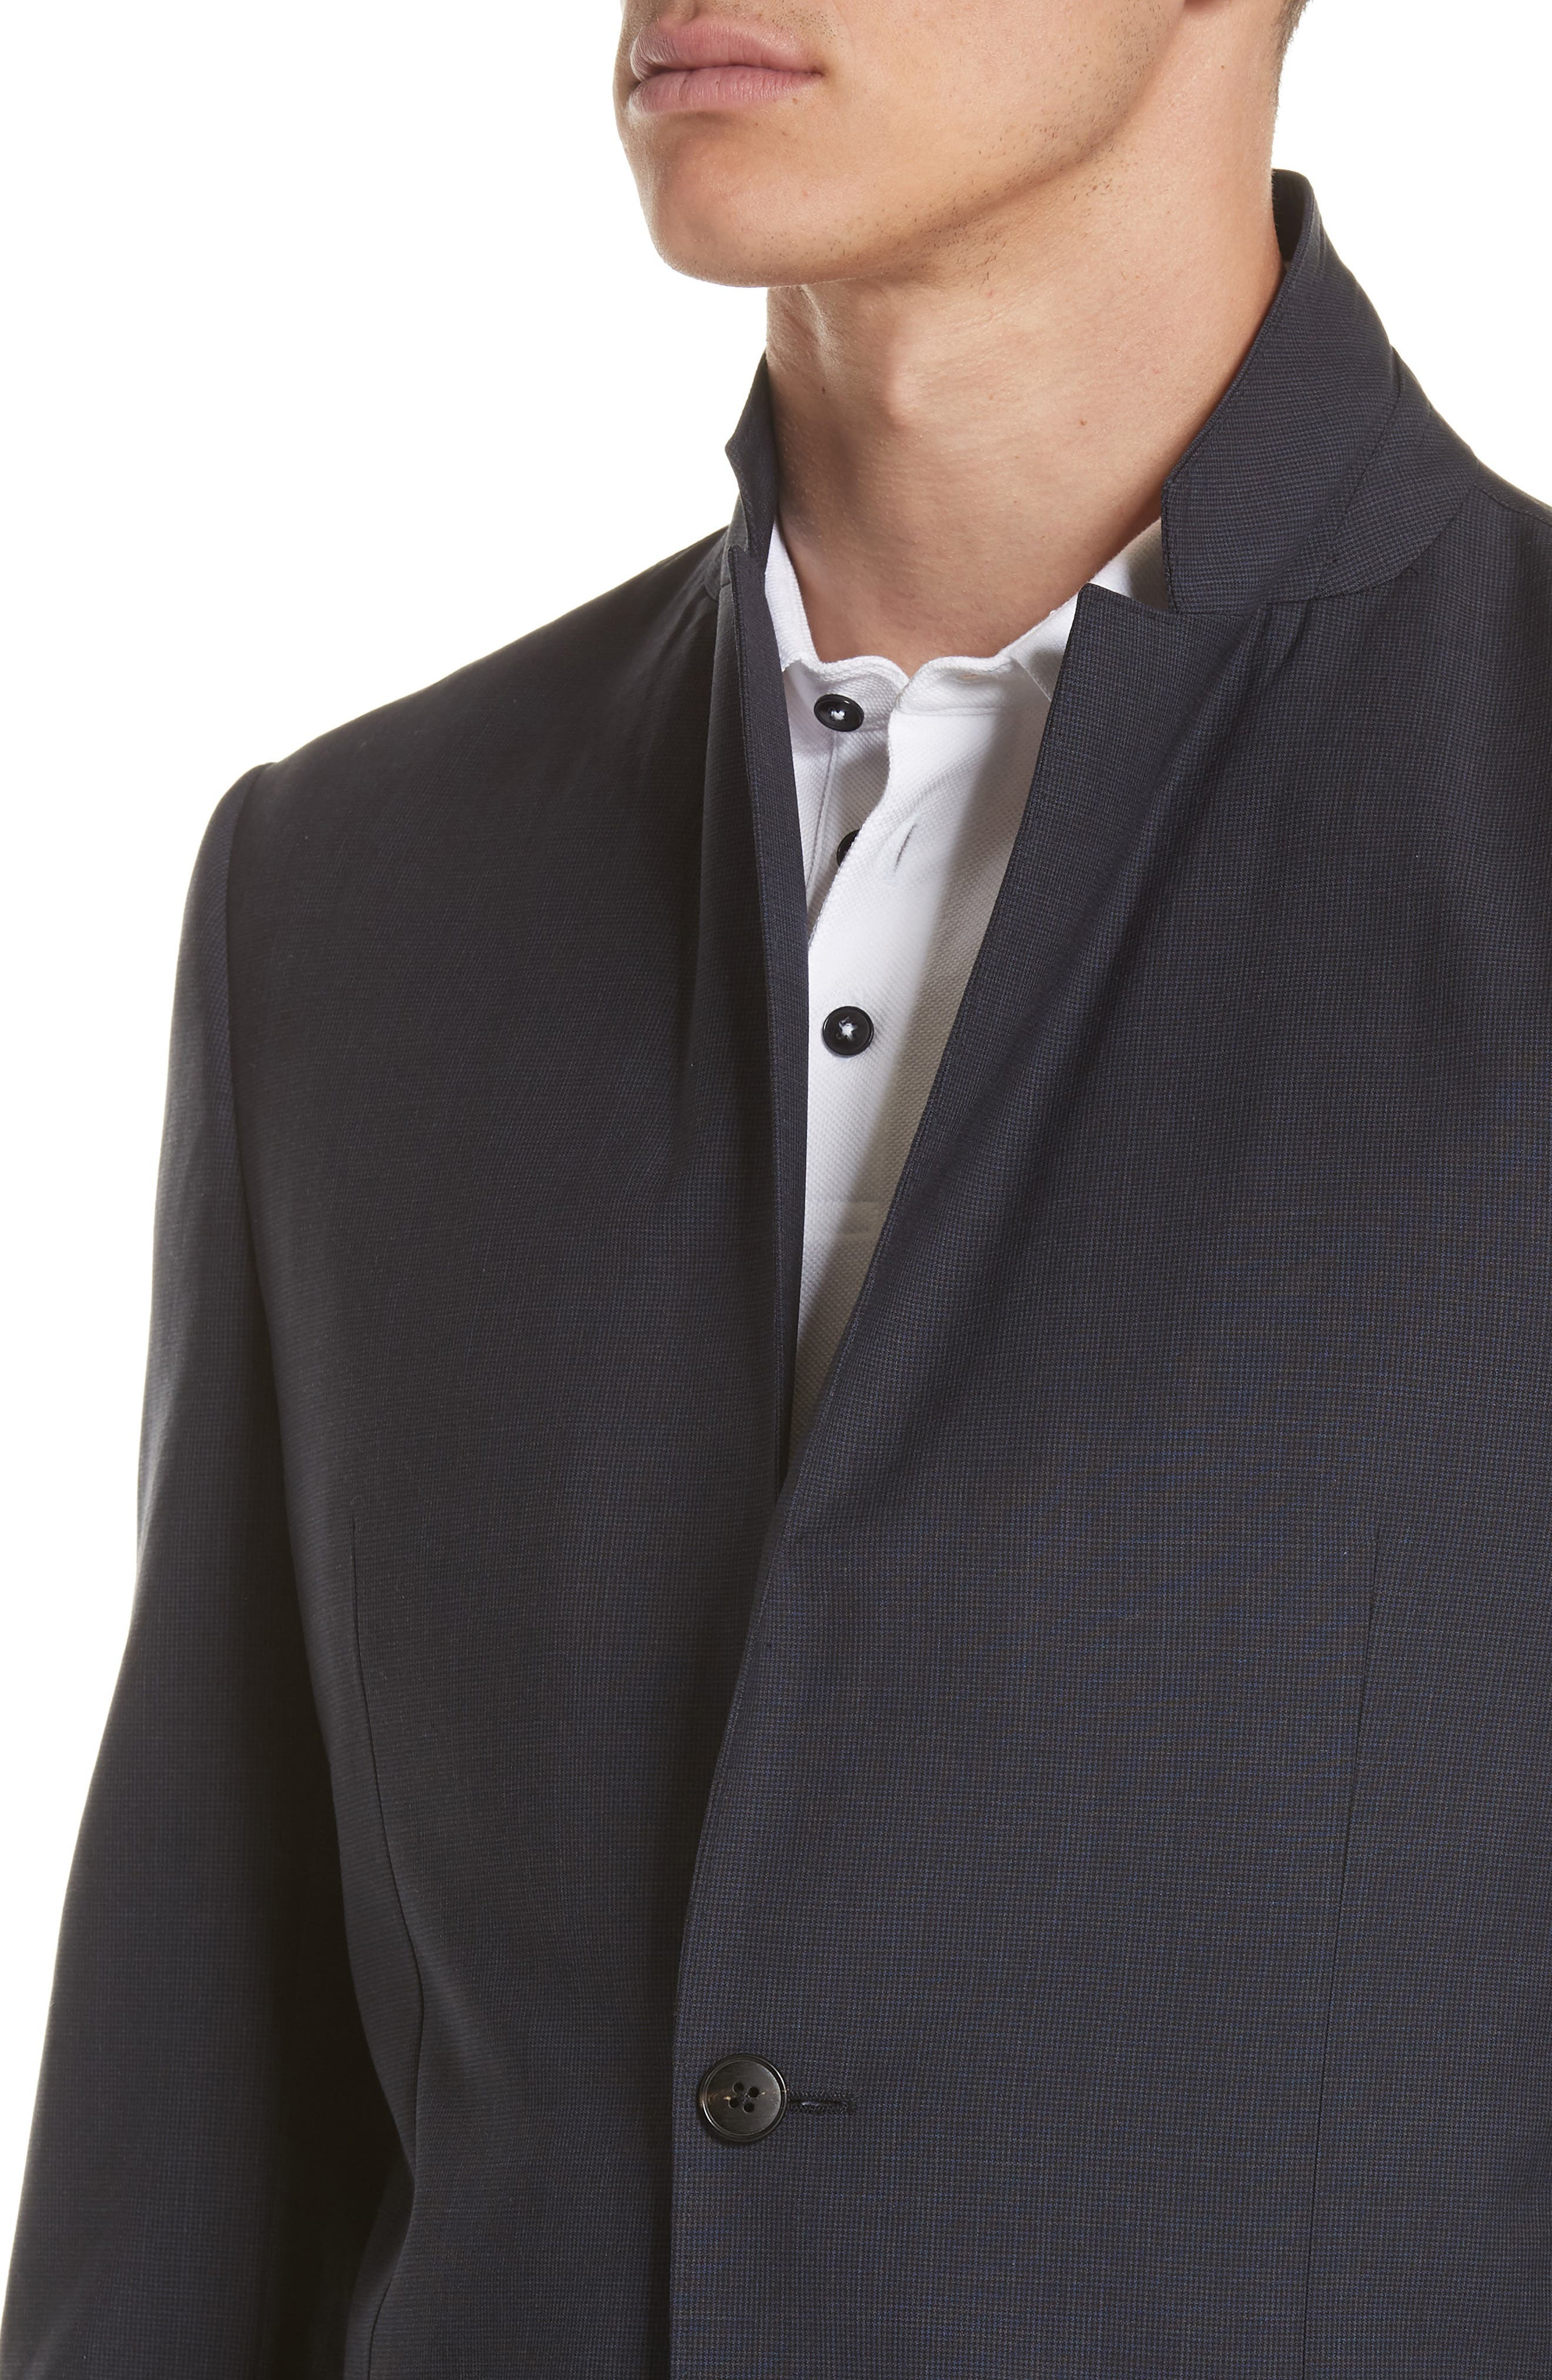 TECHMERINO<sup>™</sup> Wash & Go Trim Fit Solid Wool Suit,                             Alternate thumbnail 4, color,                             412